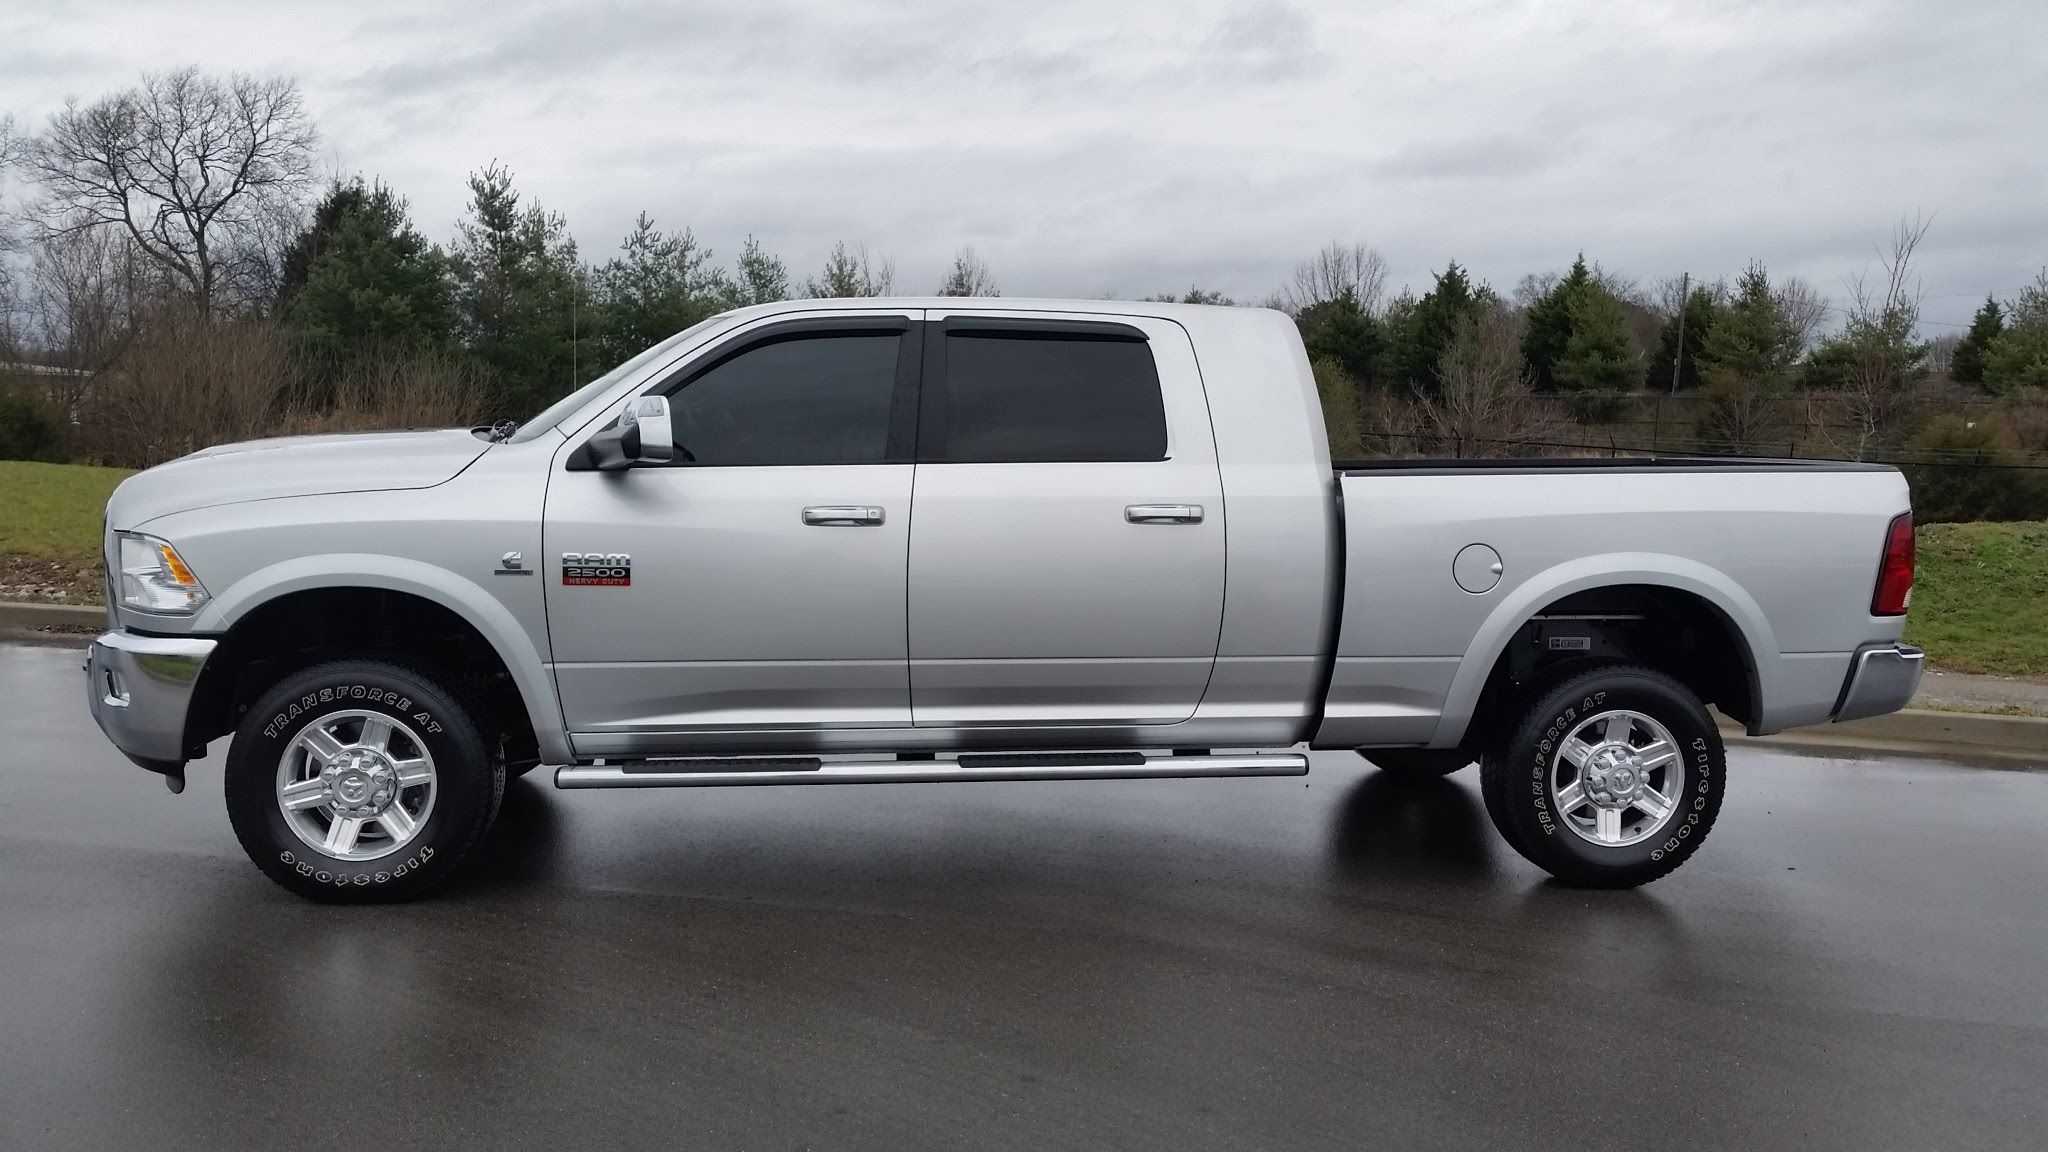 sold.2012 RAM 2500 HD MEGA CAB 4X4 LARAMIE 6.7L CUMMINGS DIESEL 64K SILVER FOR SALE 855-507-8520